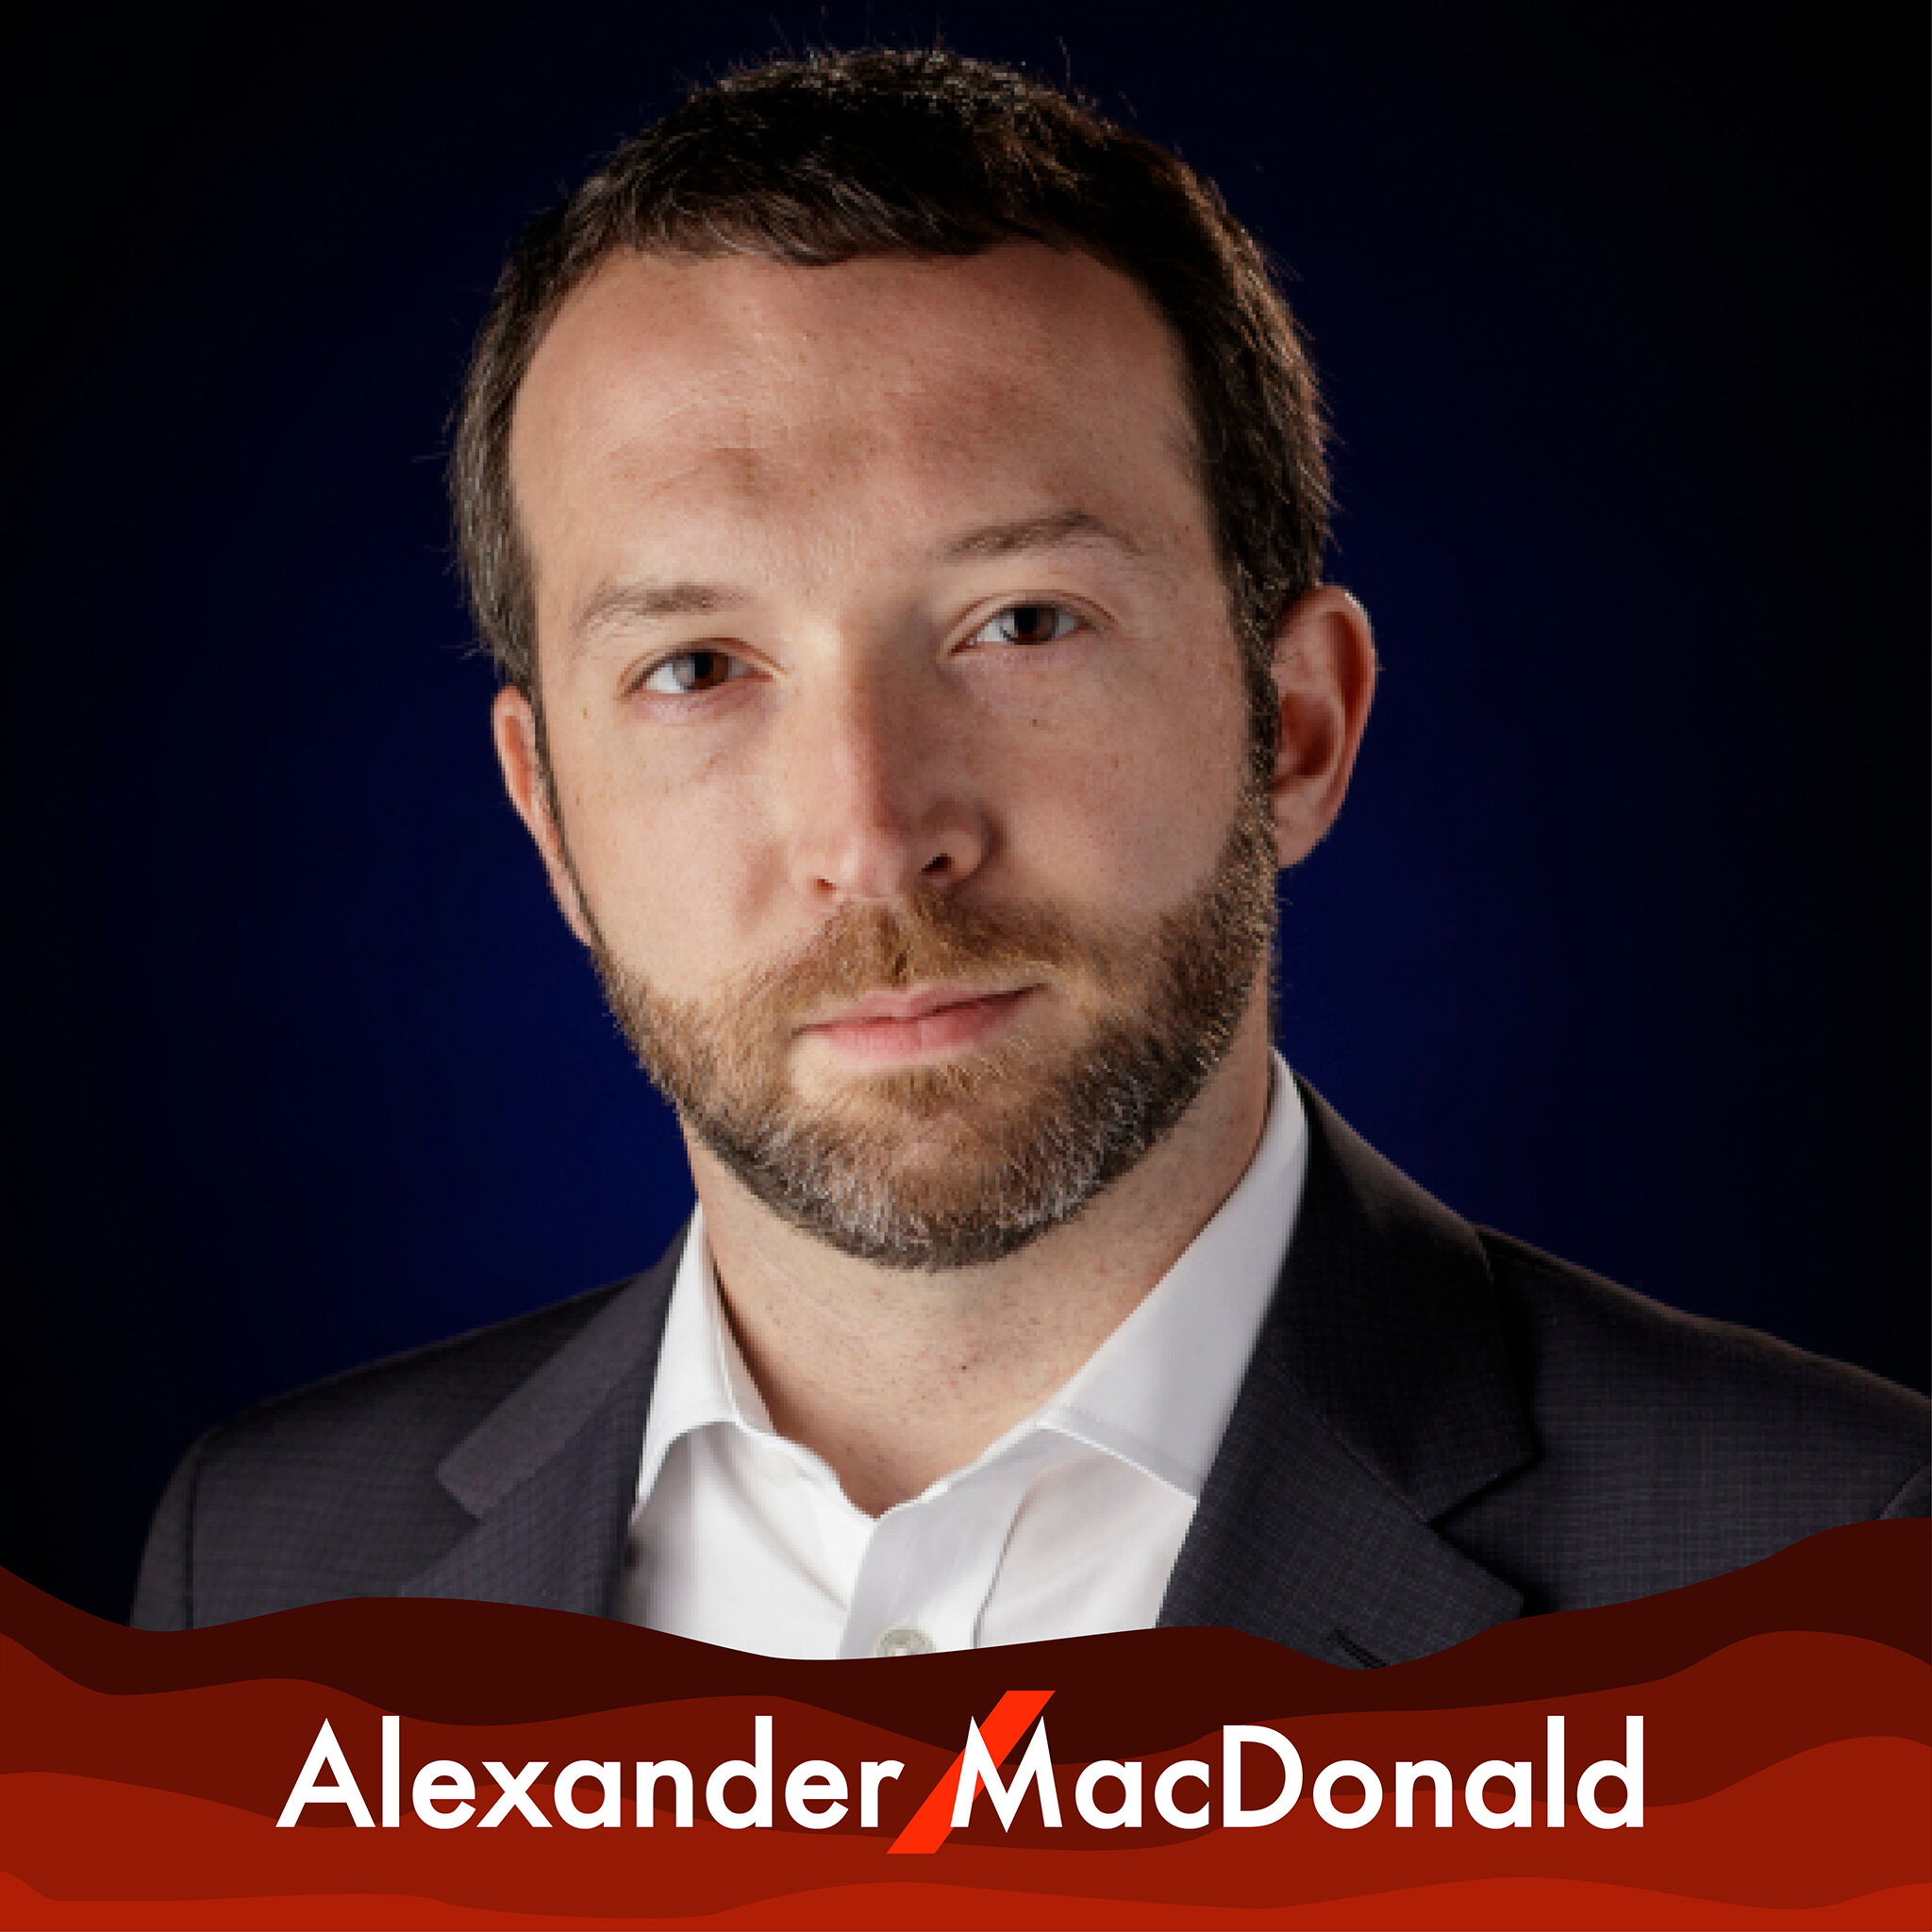 A picture of Alexander MacDonald